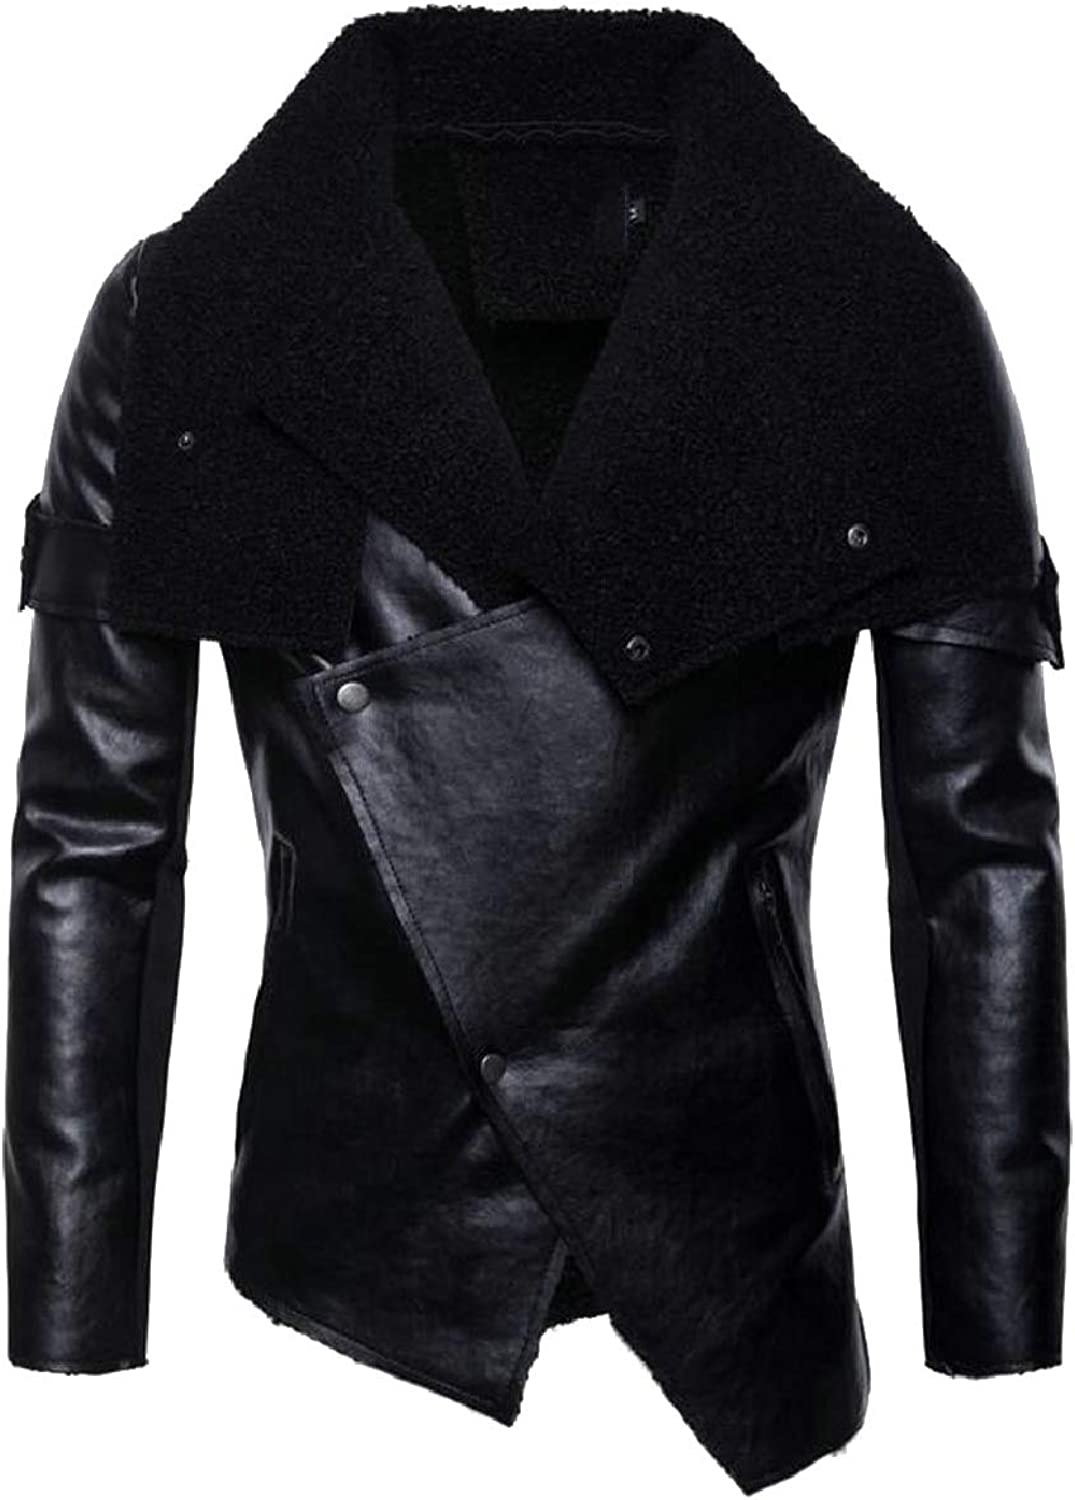 3a1d73a7 LEISHOP Mens Casual Slim Slim Slim Moto Bomber Biker Jacket Faux Leather  Jacket Coat d3ca82